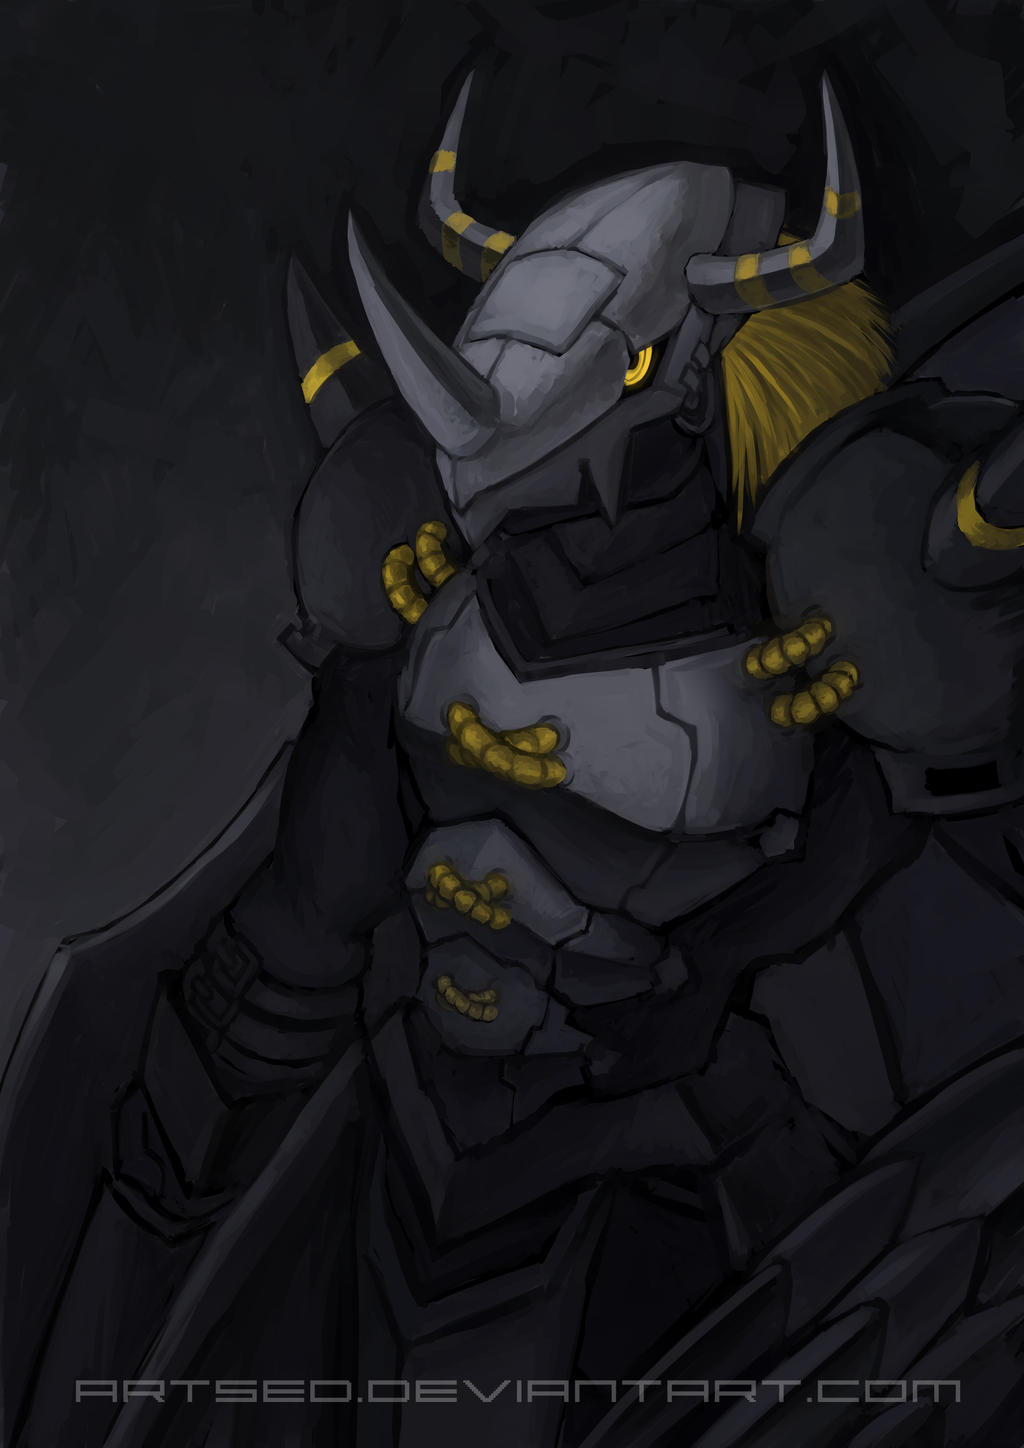 Blackwargreymon by Artsed